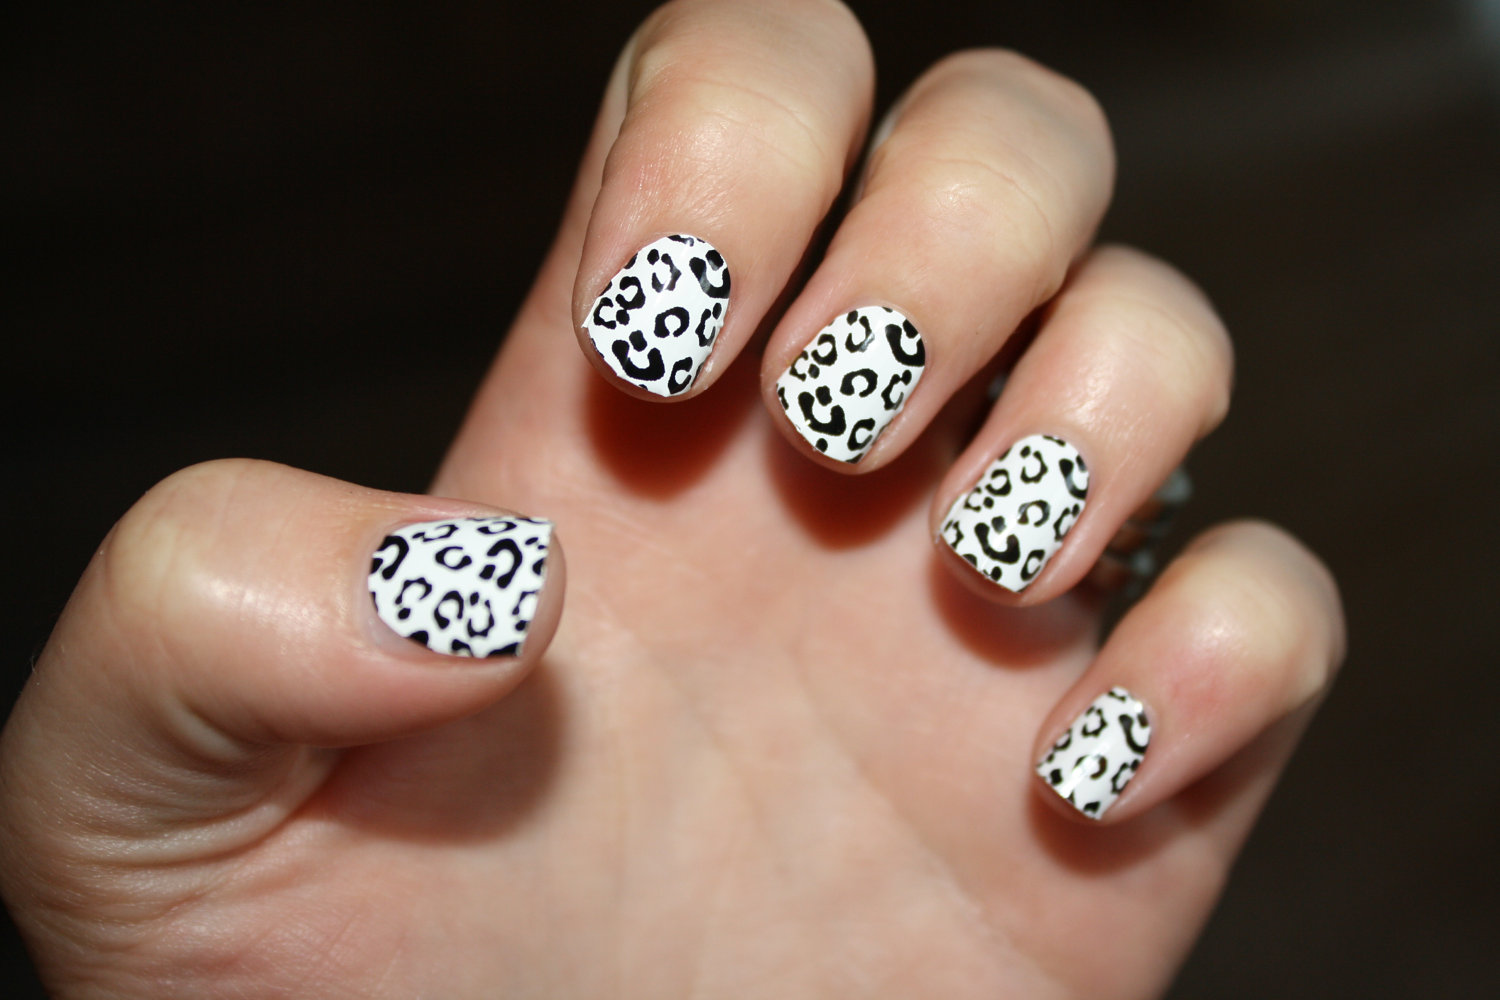 black and white nail art designs 23 25 Unique Black and White Nail Art Designs 2015 25 Unique Black and White Nail Art Designs 2015 black and white nail art designs 23